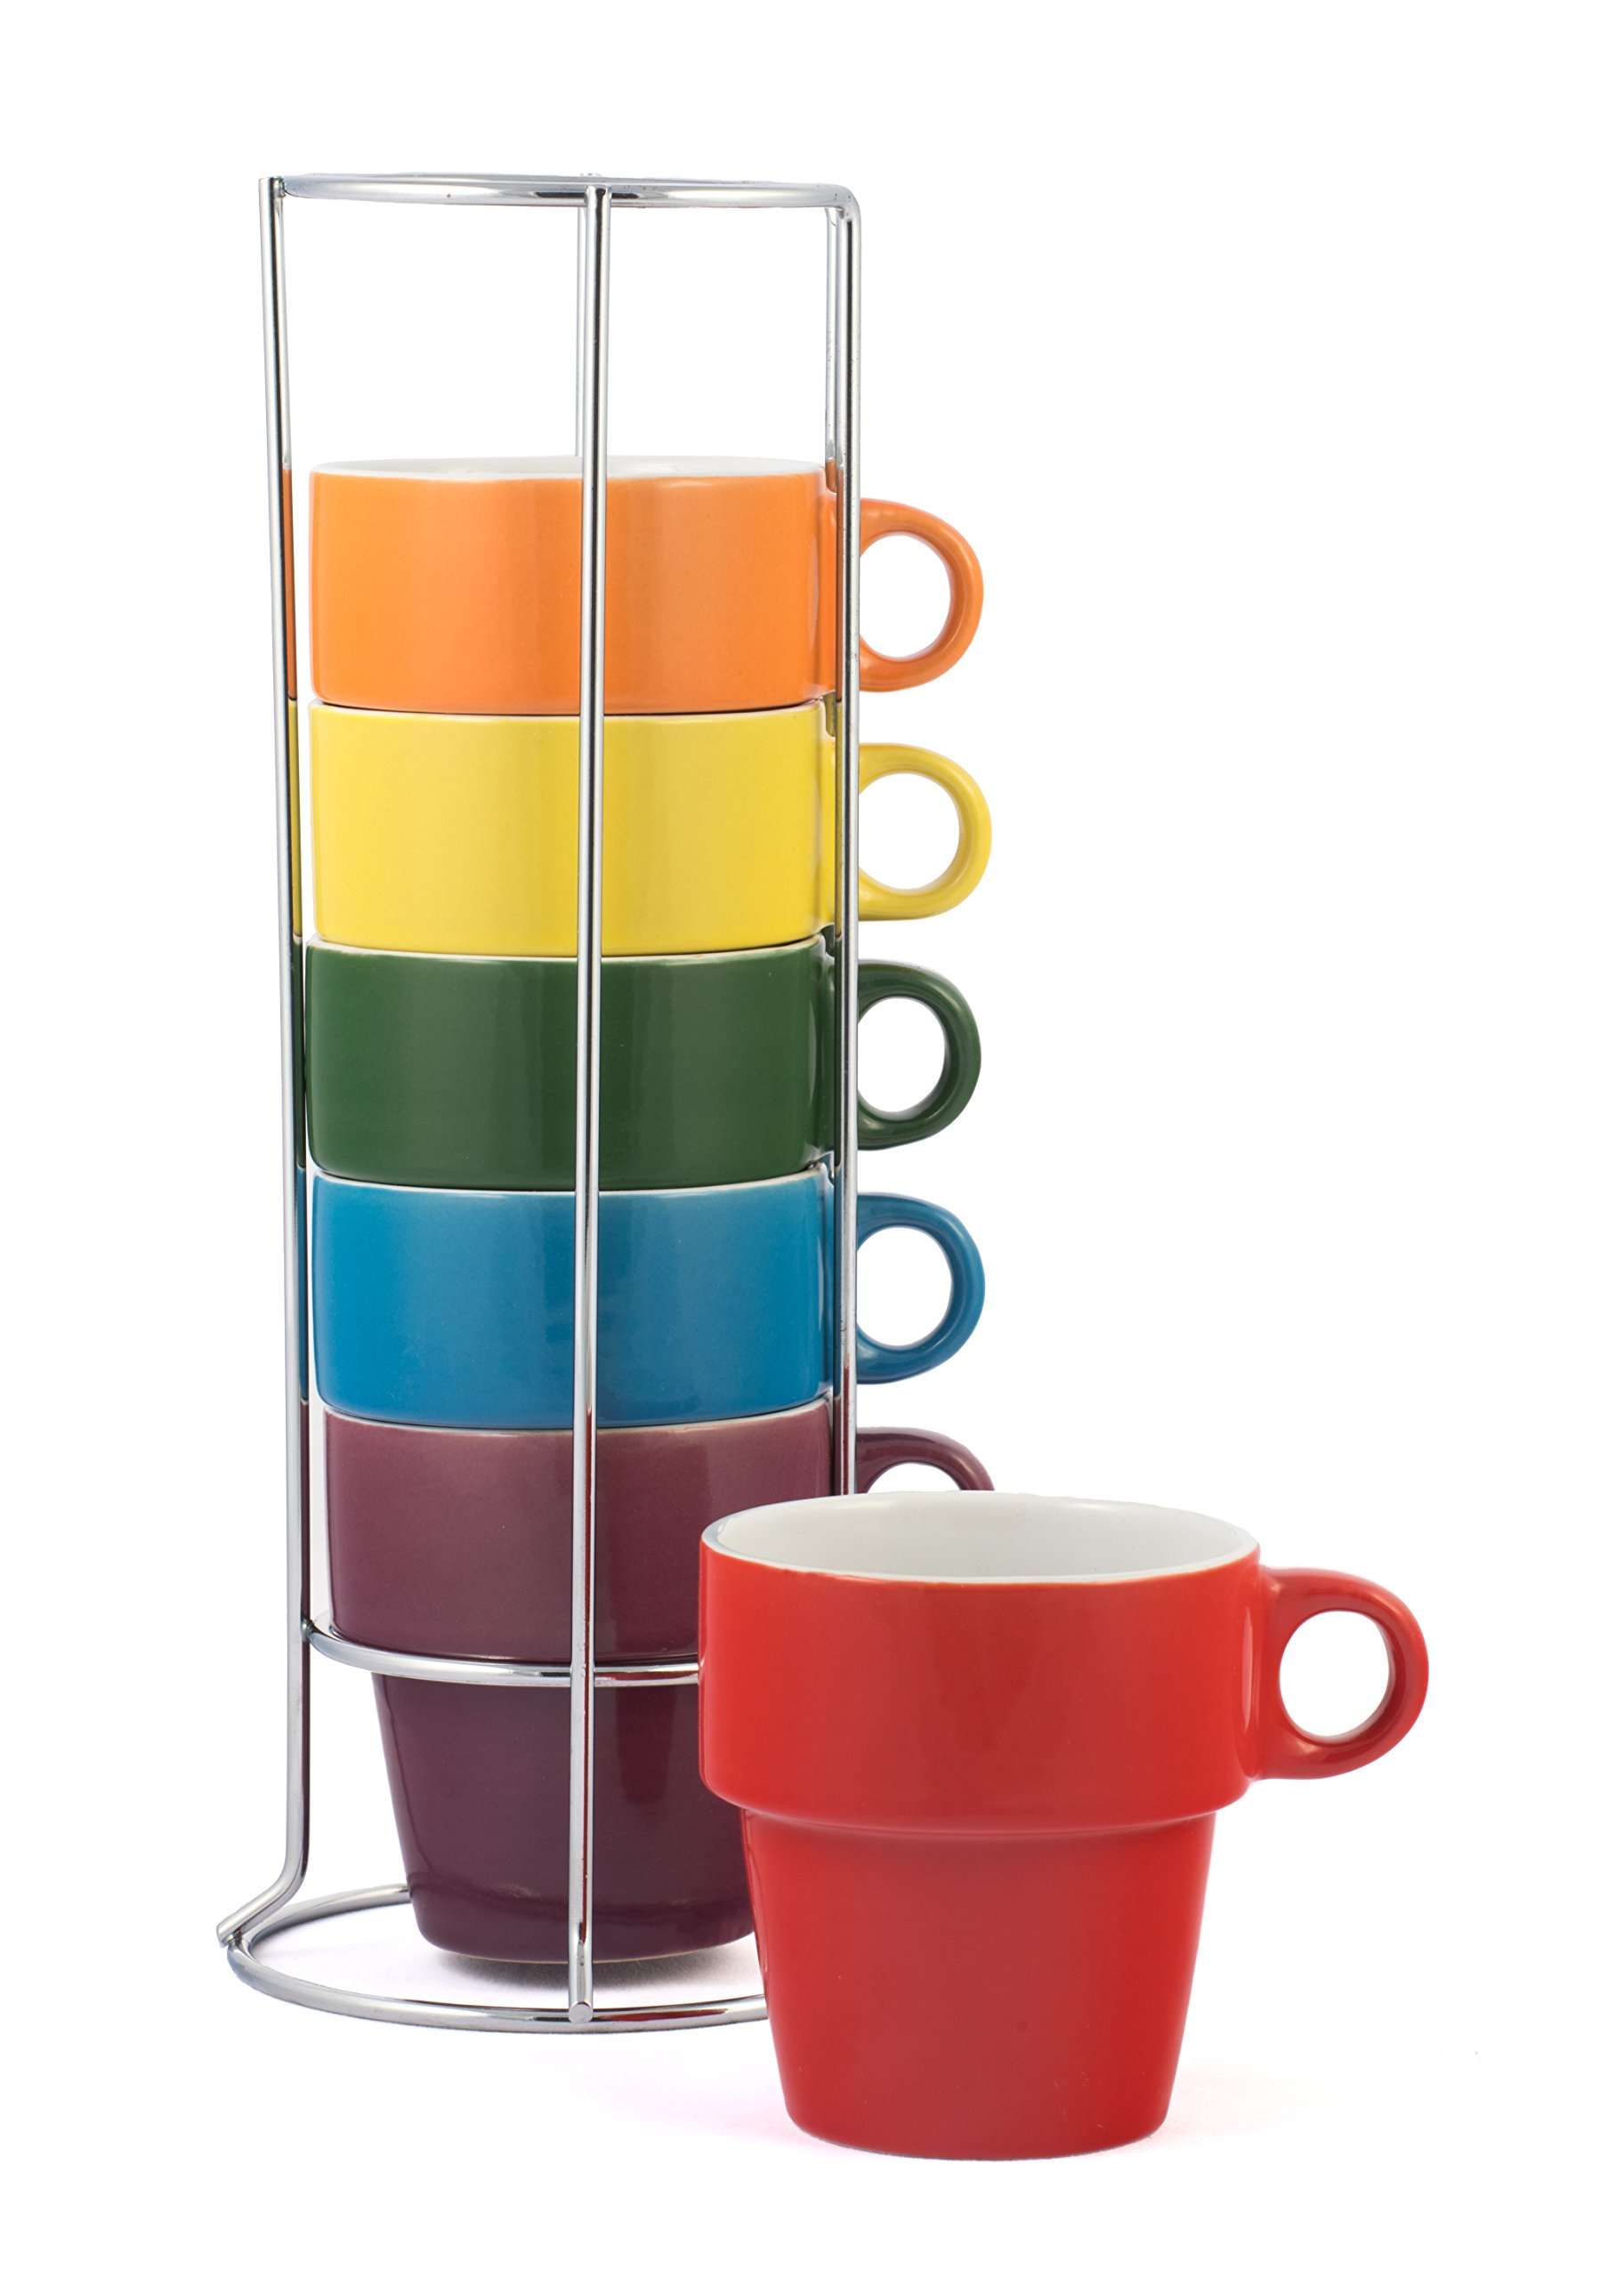 Gypsy Color Ceramic Coffee Mug Set of 6 Medium (8 oz.) Stackable Coffee Cups with Chrome Stand, Mulicolor Rainbow Flag Colors